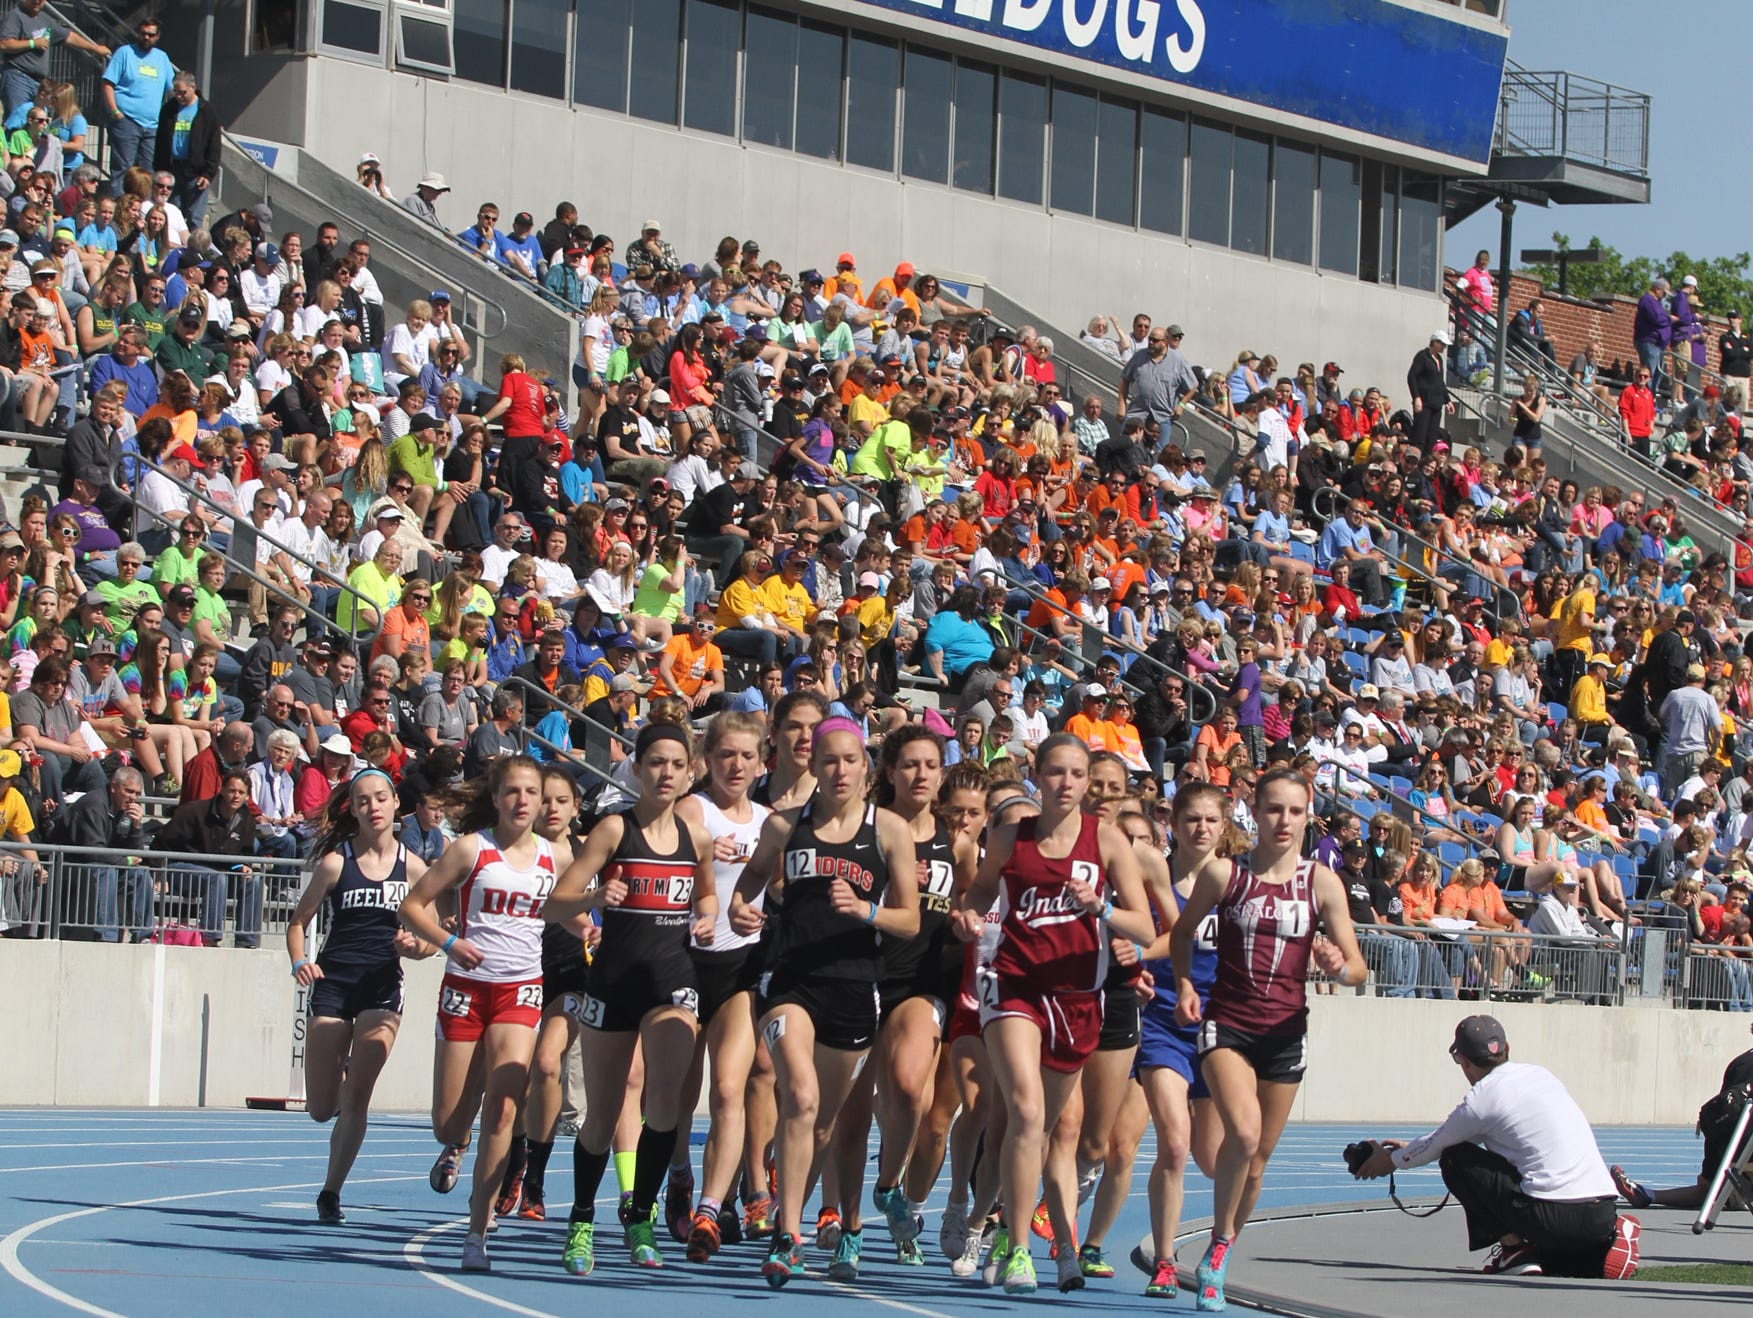 Williamsburg junior Julie Hollensbe (12) and the rest of the pack in the Class 3-A 3,000-meter run pass the grandstand at Drake Stadium Thursday during the state track meet.